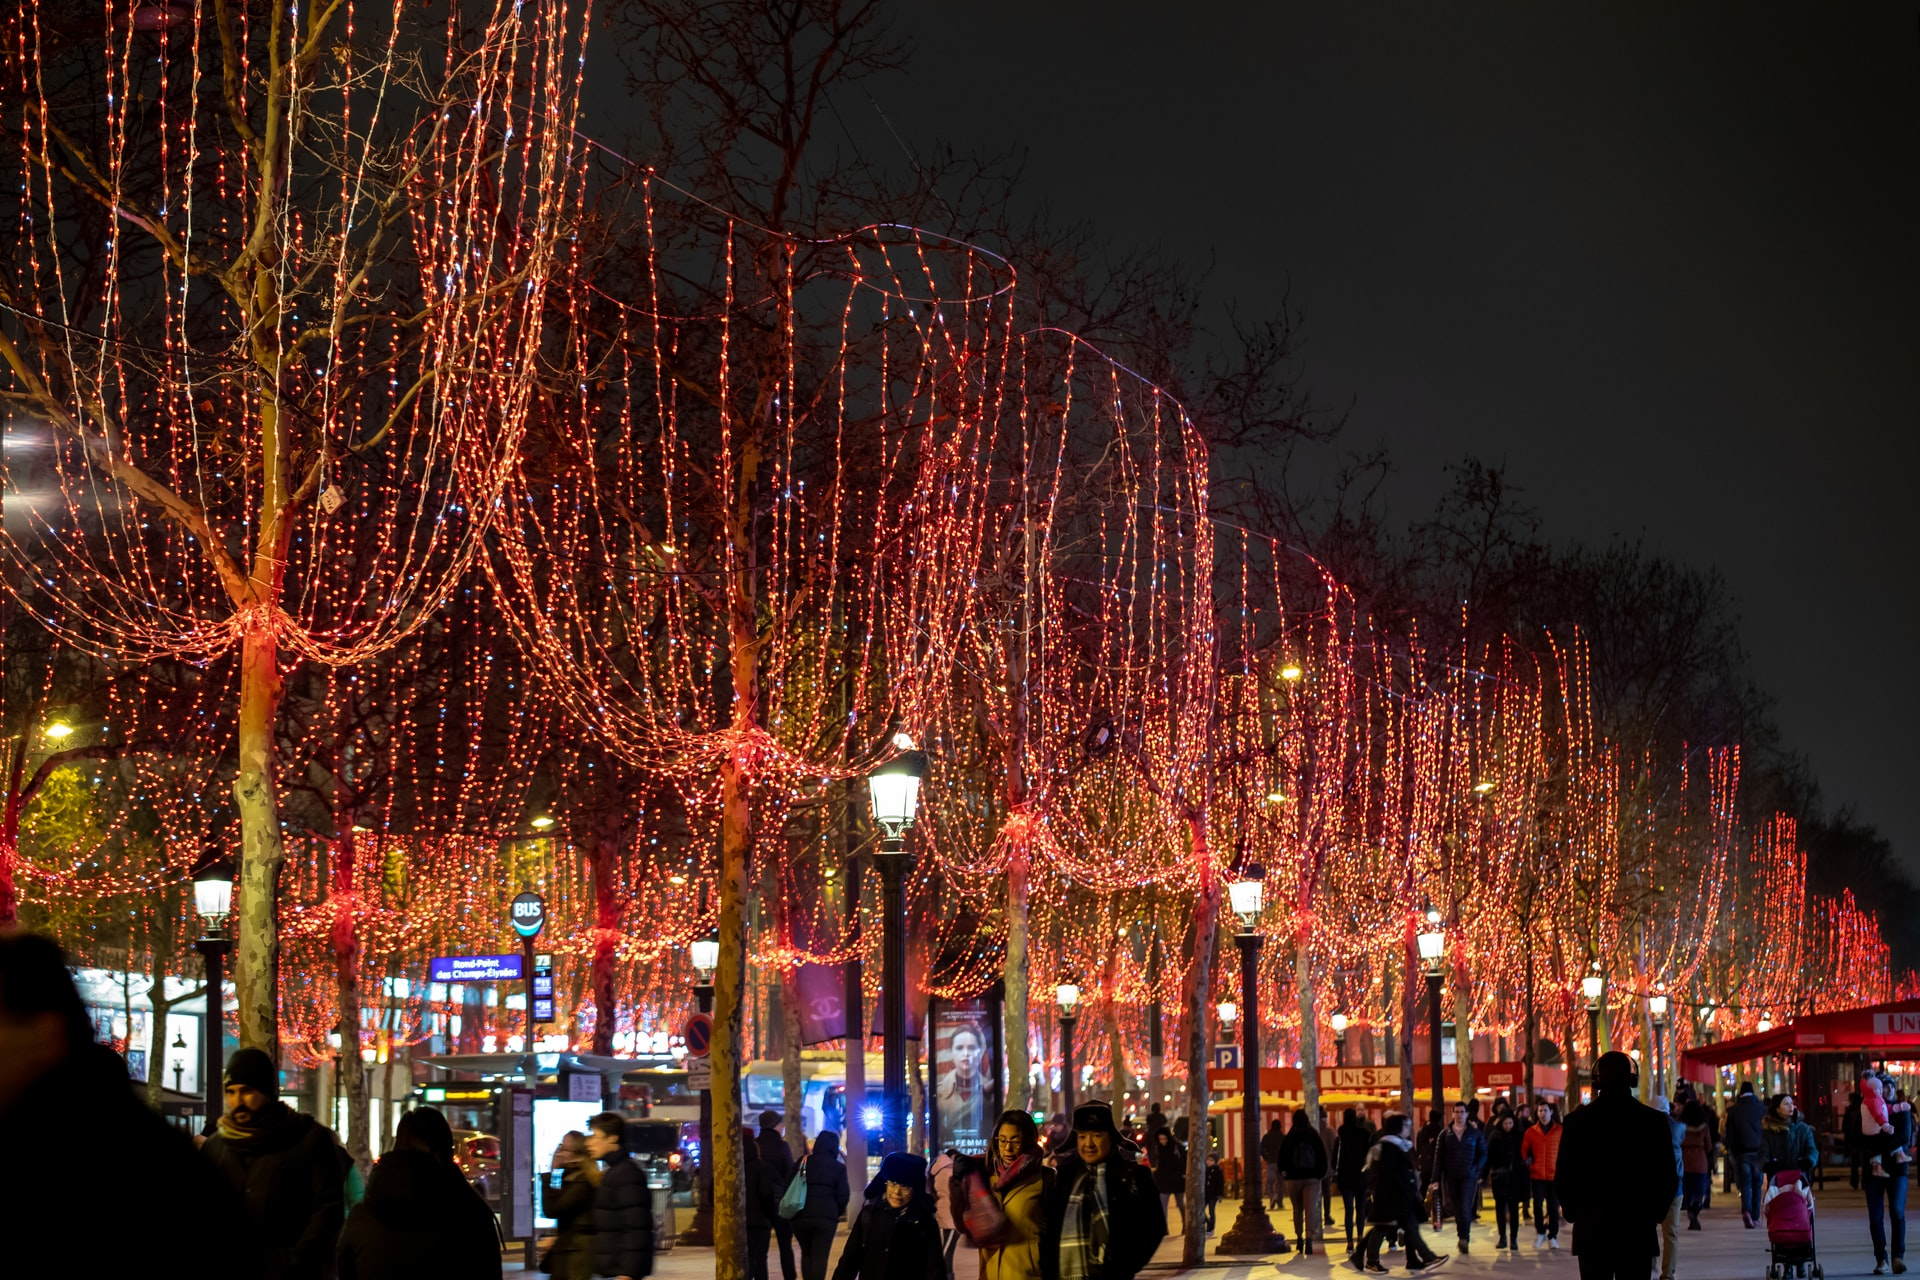 stock photo of Champs Elysees at night.